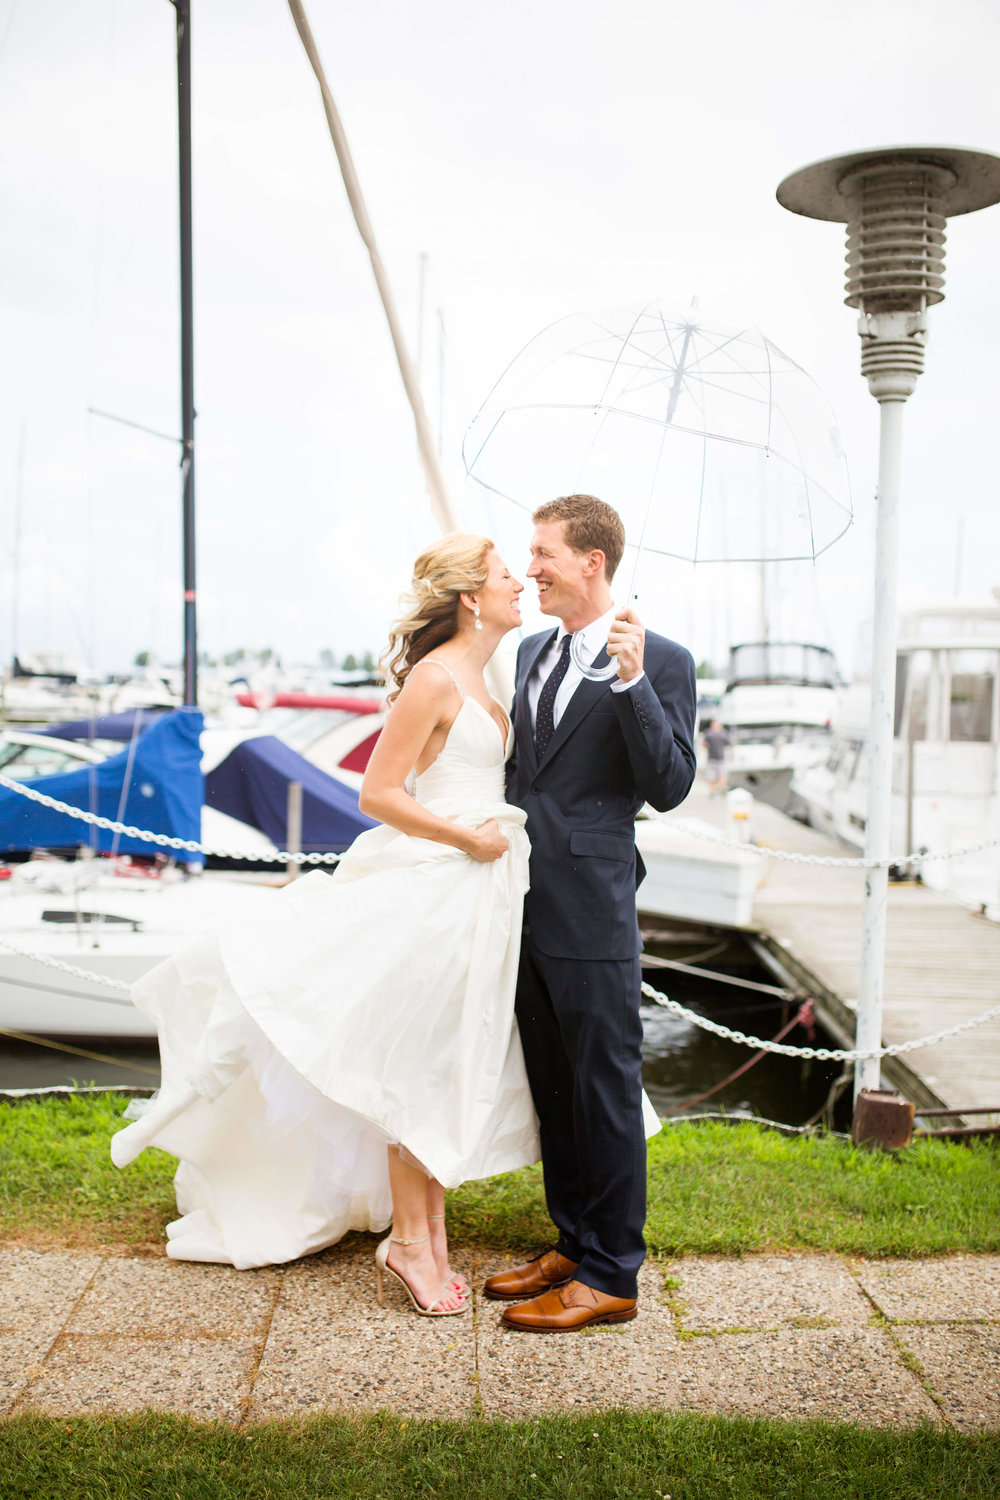 bride and groom at the marina wind swept with clear umbrella | Minnesota wedding photographer Studio KH wedding dress details | wedding blog | Sixpence Events 70 Ways to Photograph Your Wedding Dress.jpg